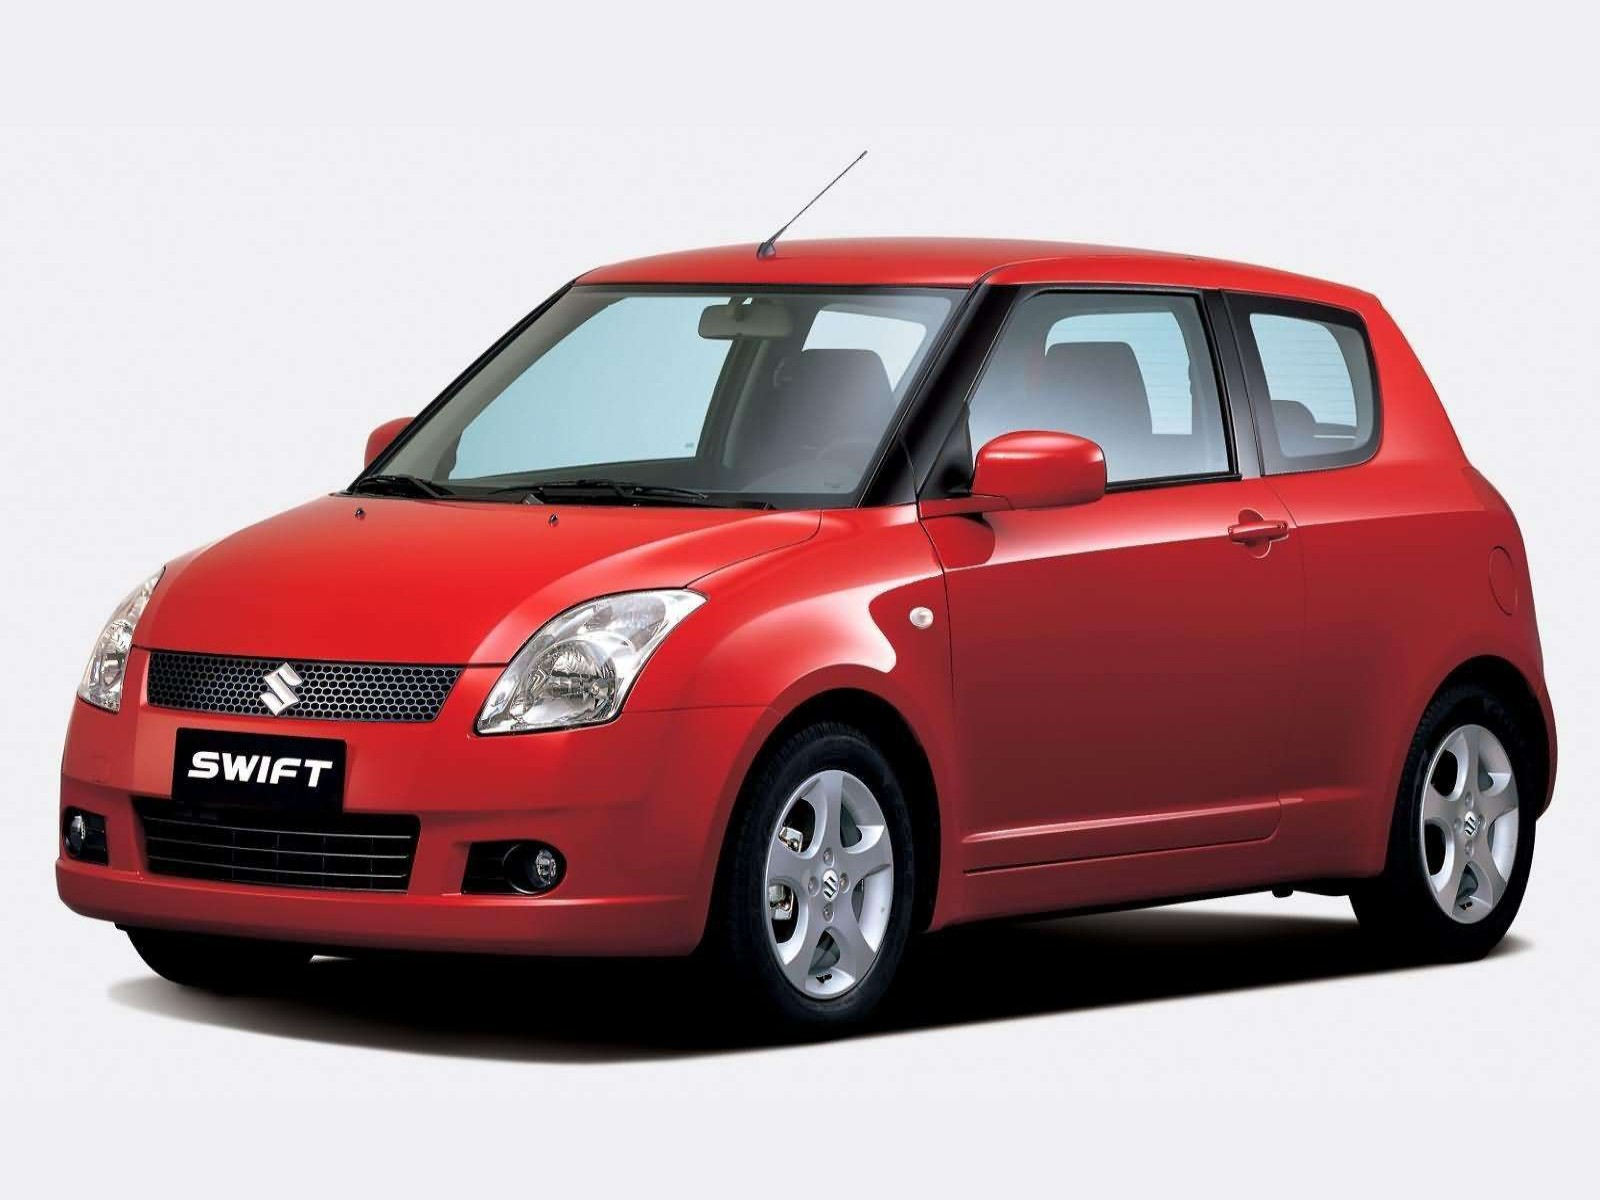 Suzuki Swift VVT model 2005 wallpaper 8